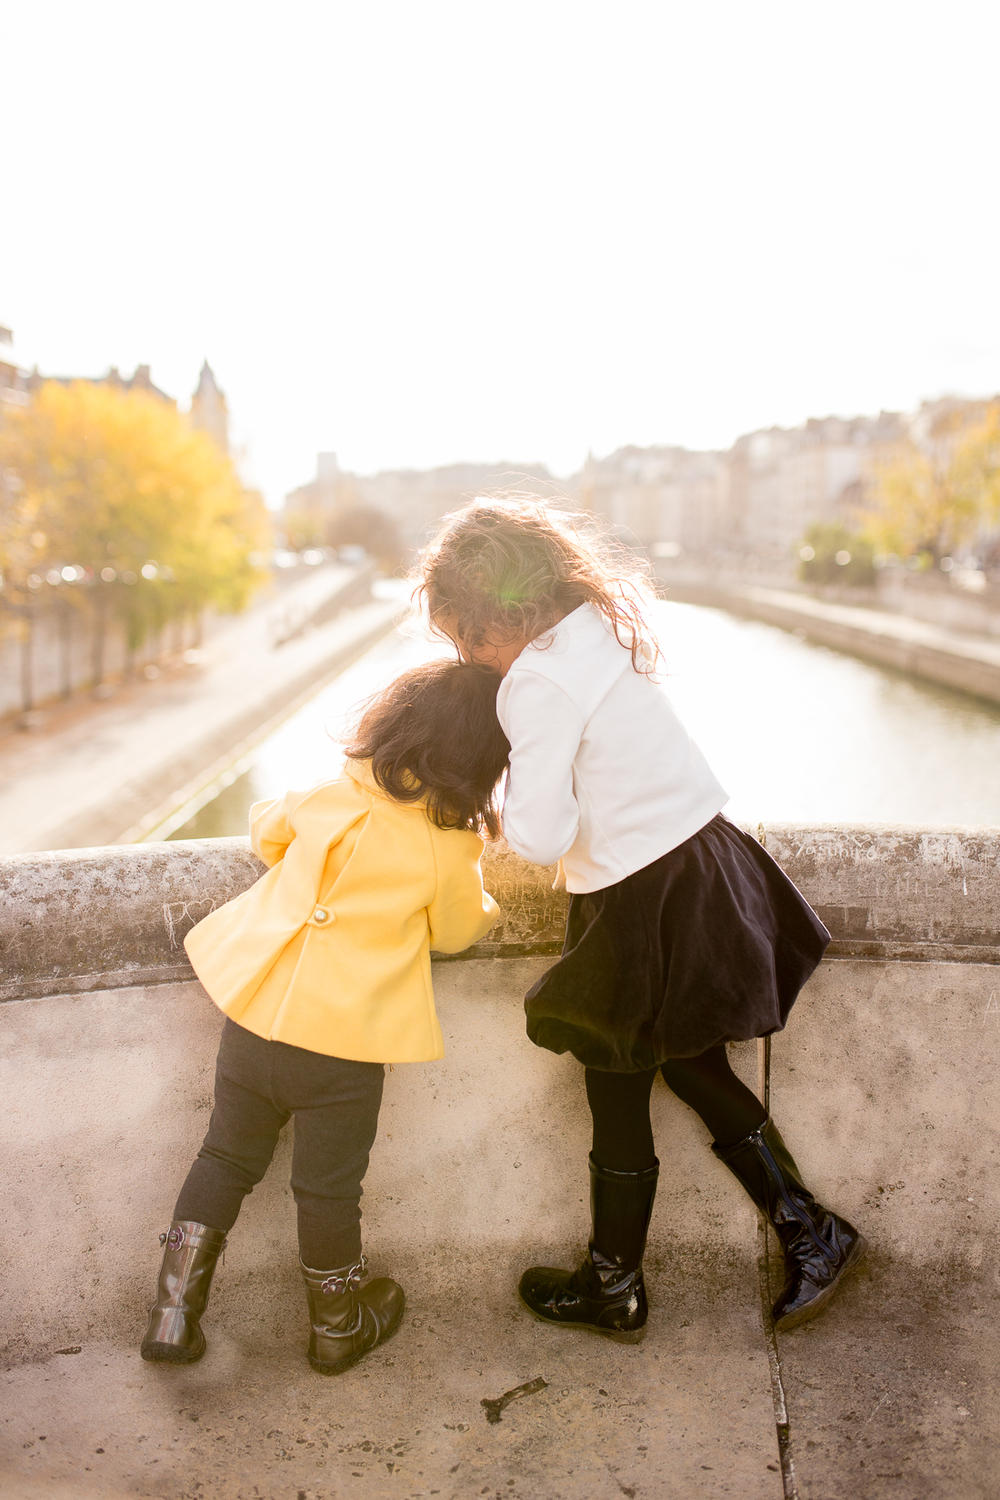 spring-fall-family-paris-eiffel-tower-photo-session-outfit-inspiratn-16